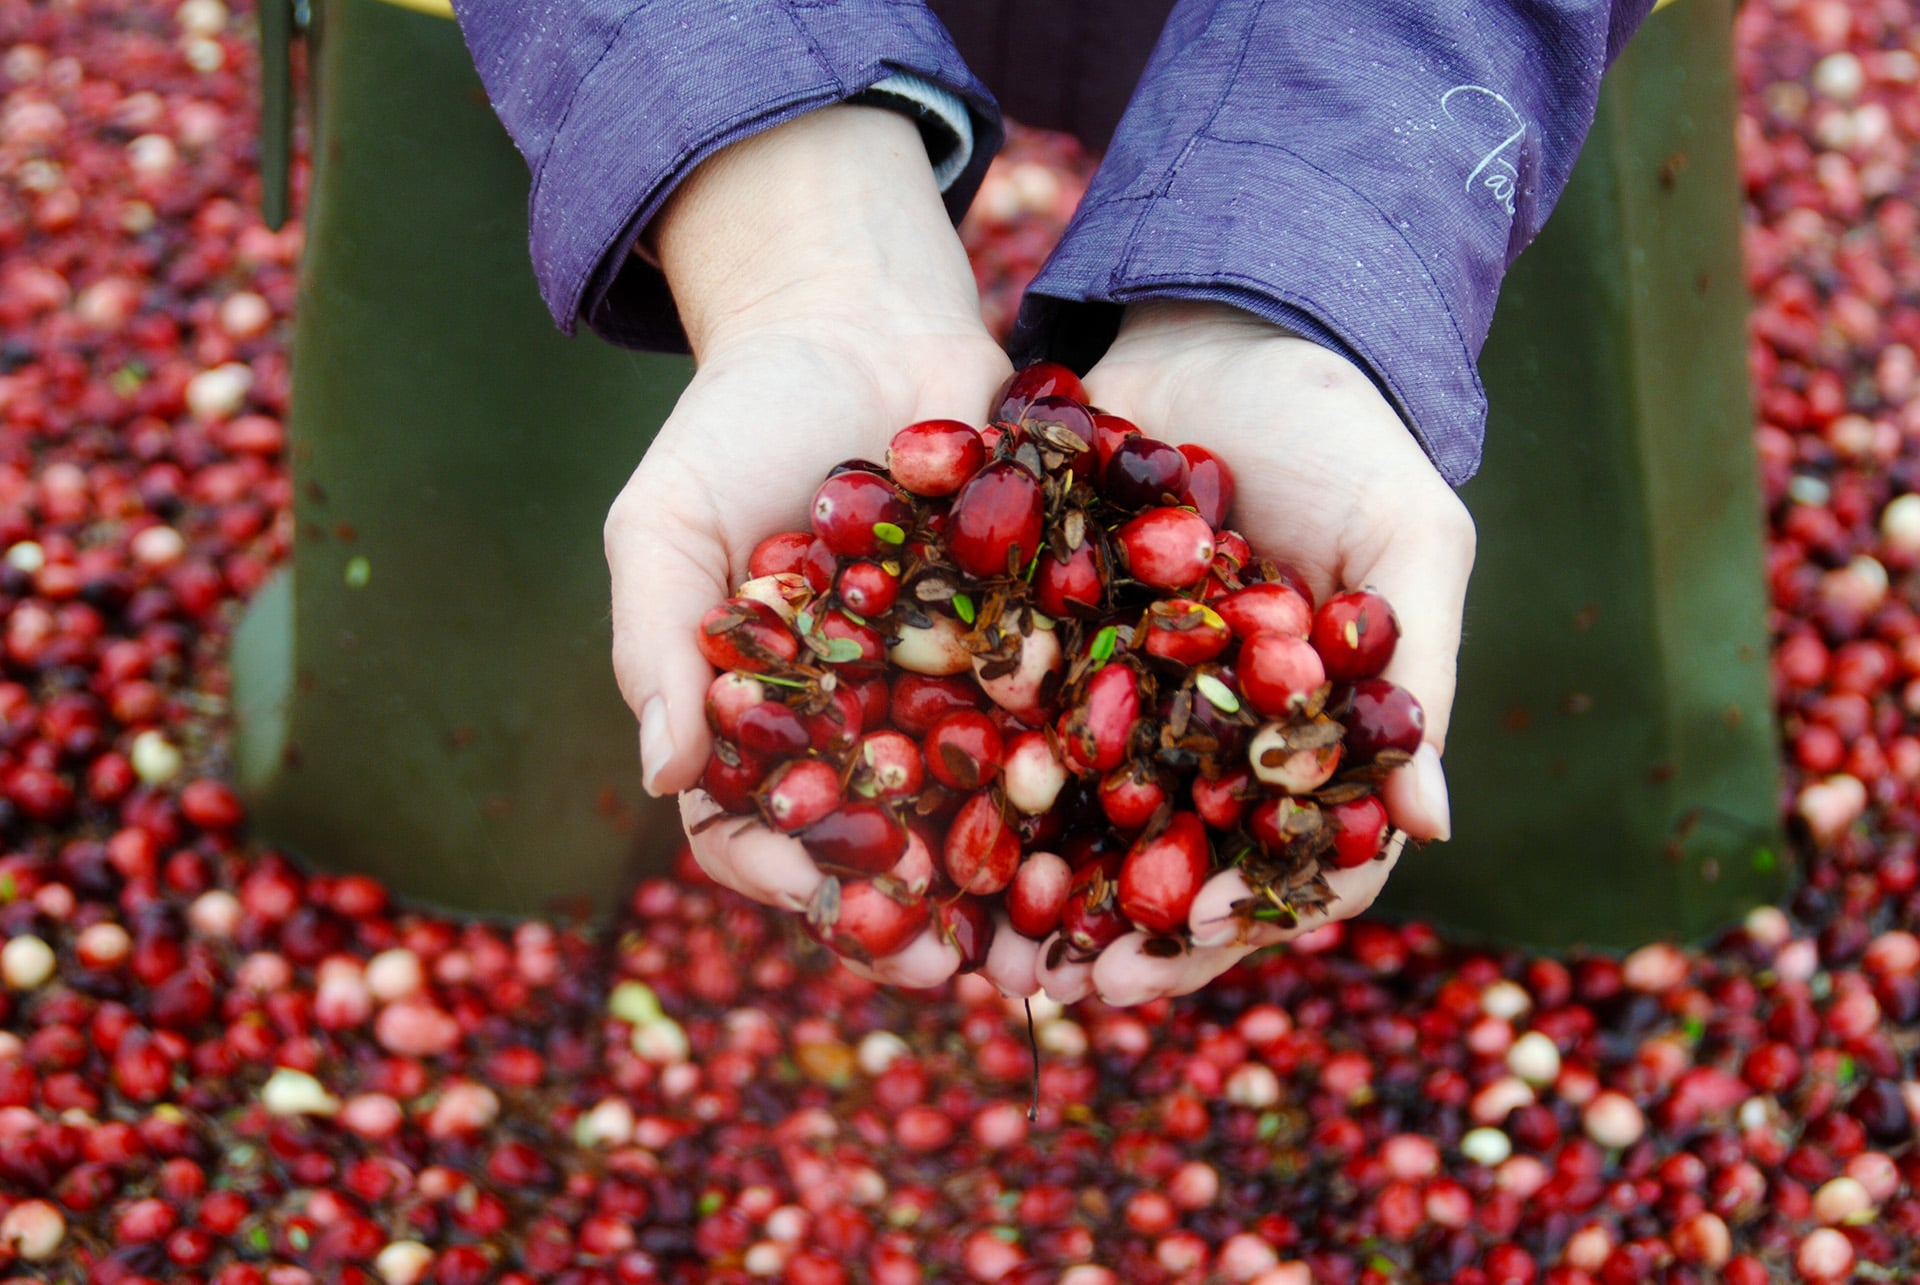 Person holding cranberries in a cranberry field